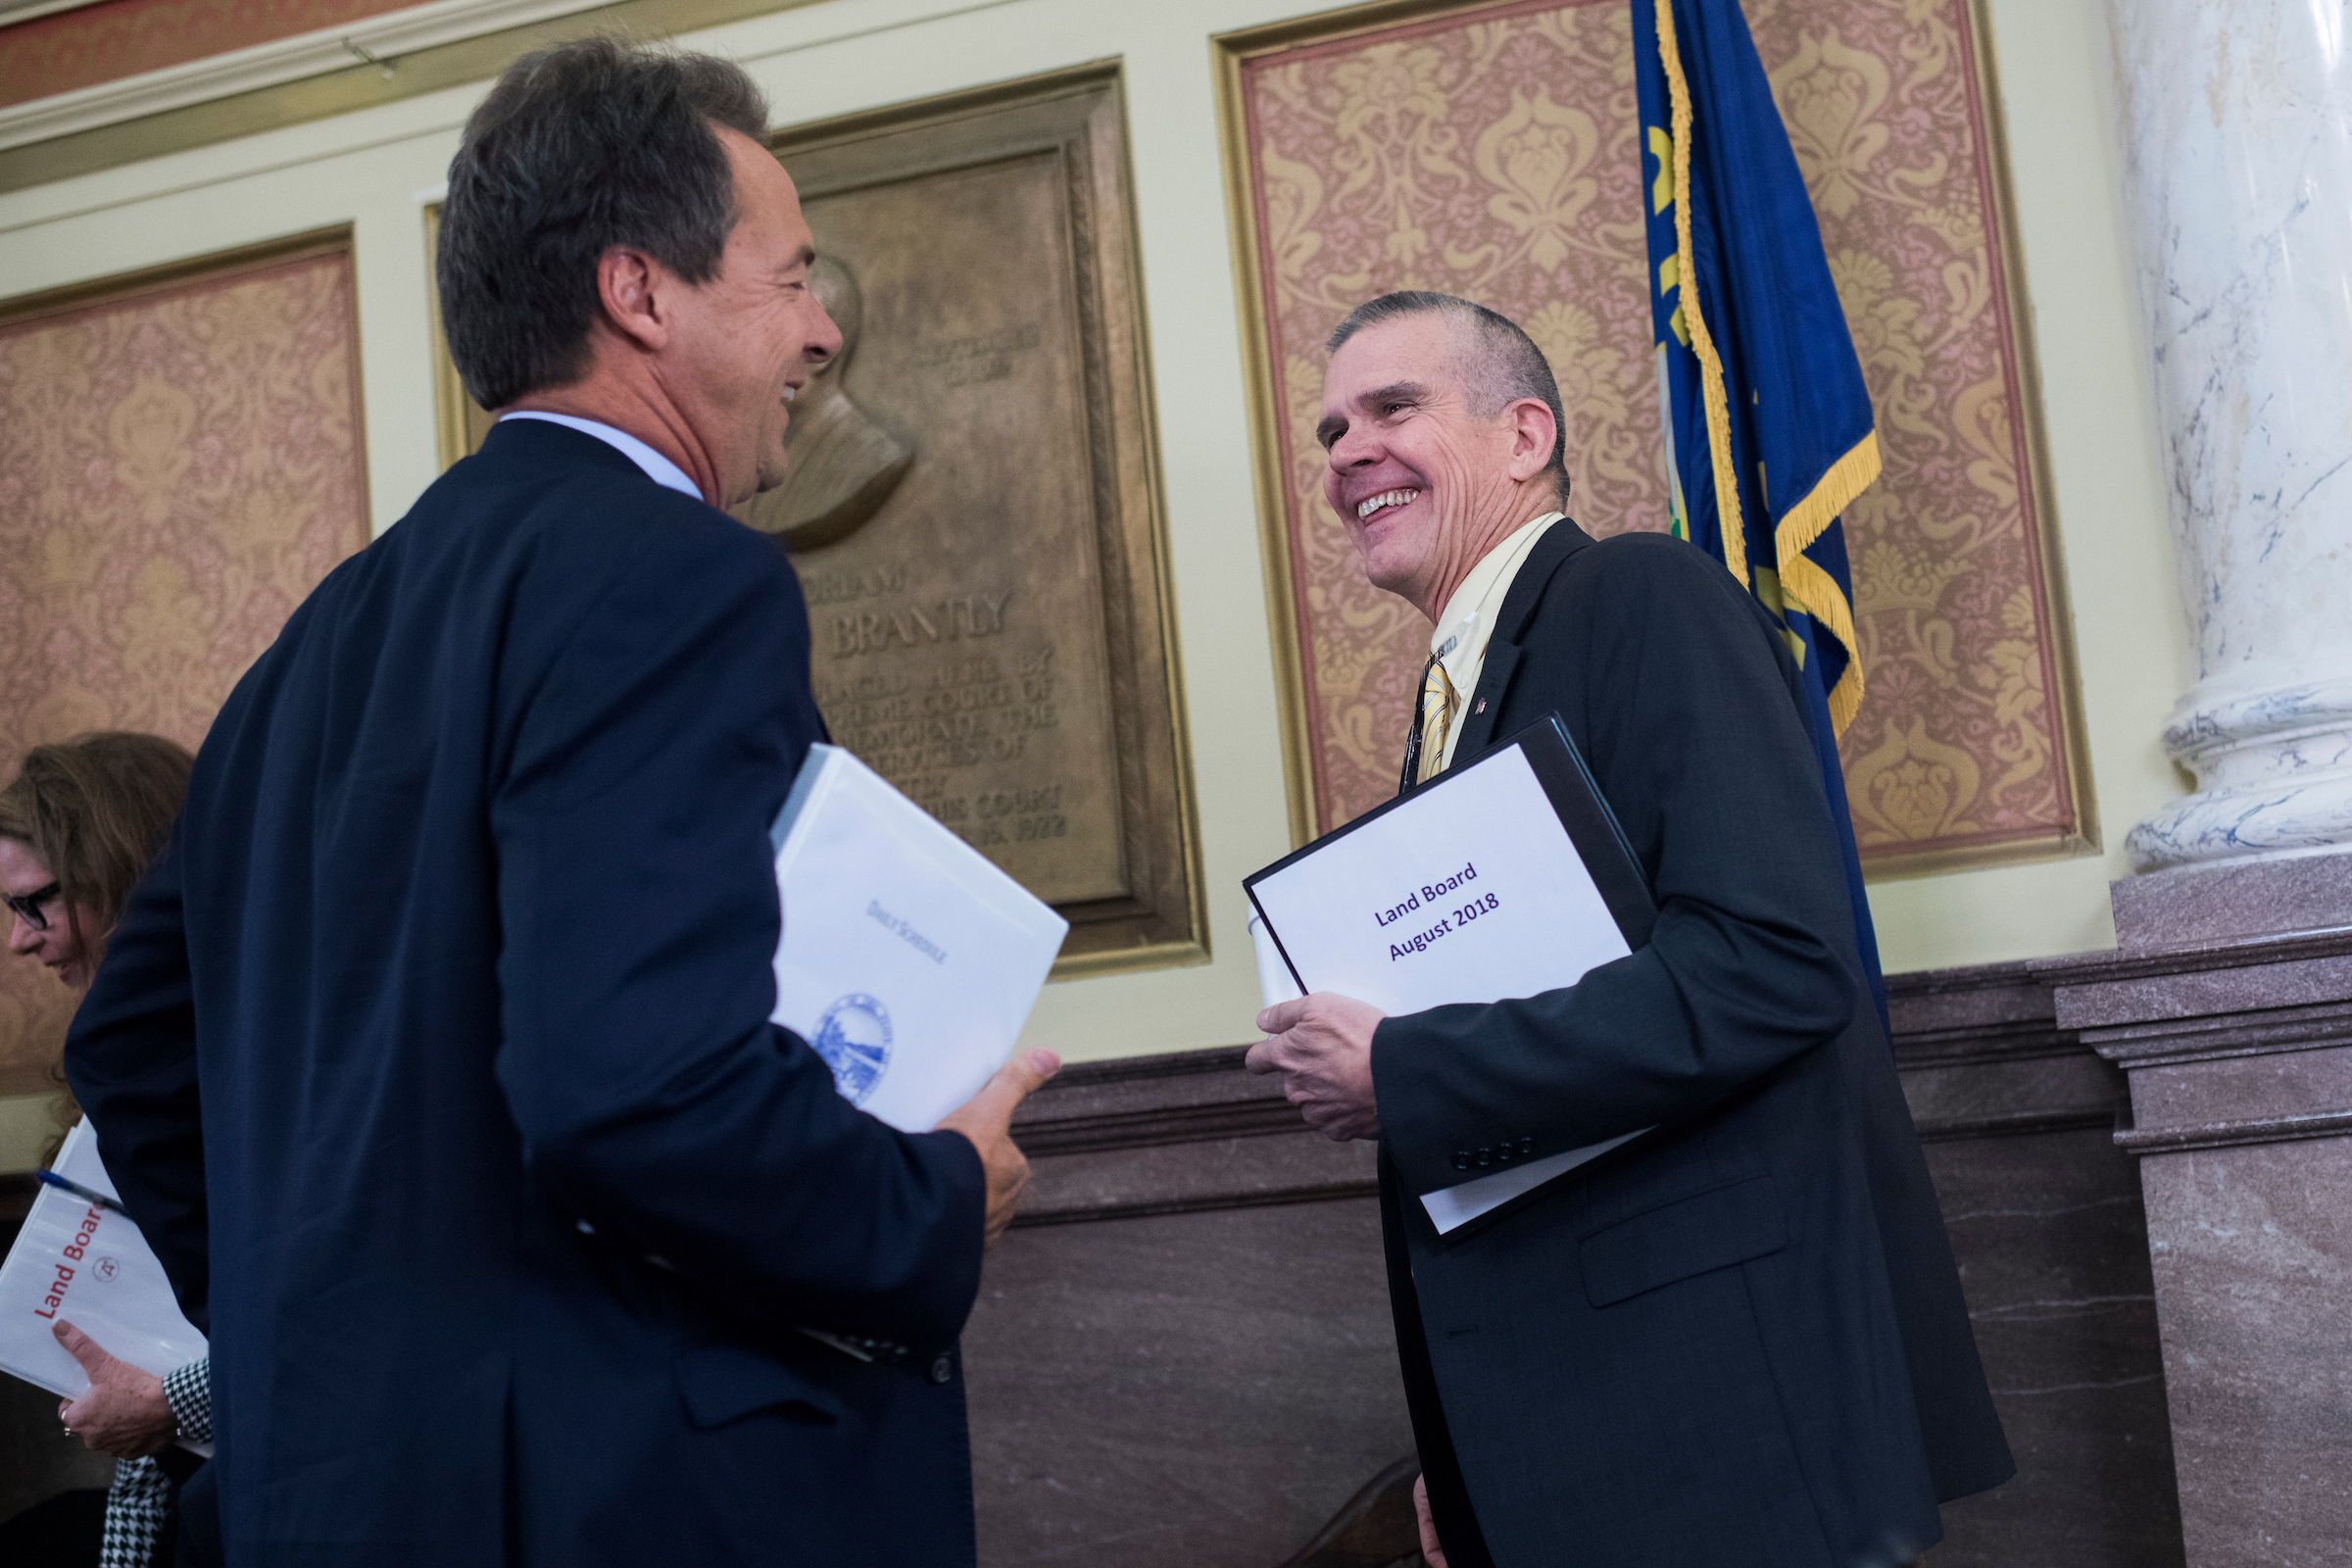 UNITED STATES - AUGUST 20: Matt Rosendale, right, Montana state auditor, talks with Montana Gov. Steve Bullock (D) during a meeting of the Board of Land Commissioners in the State Capitol building in Helena, on August 20, 2018. Rosendale, a Republican, is challenging Sen. Jon Tester, D-Mont., for the senate seat. (Photo By Tom Williams/CQ Roll Call)